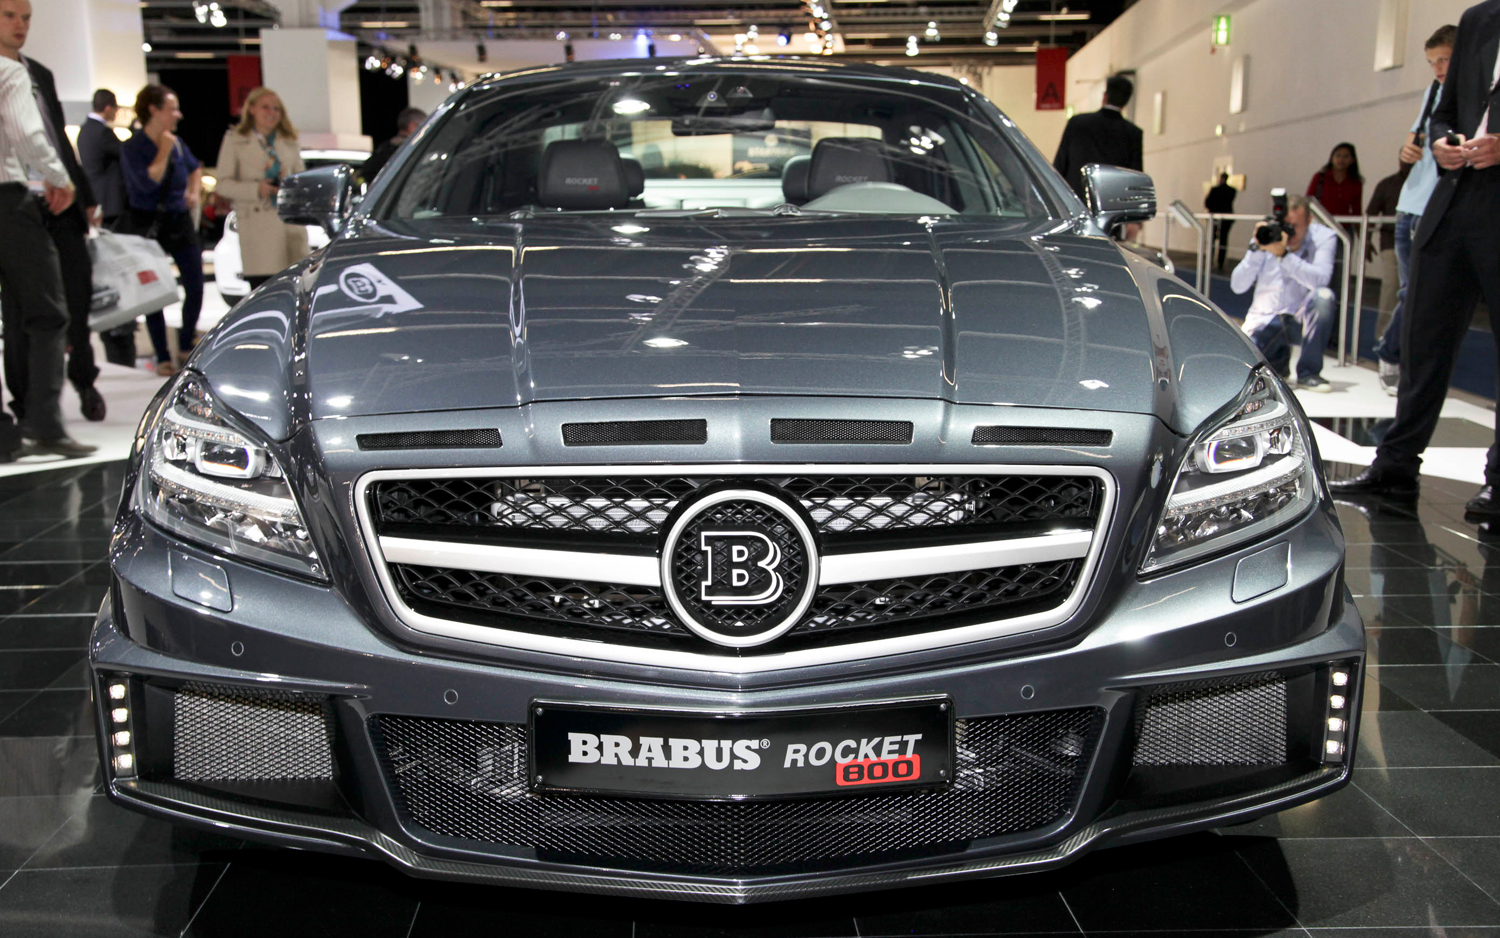 2019 Brabus Rocket Police Car photo - 5